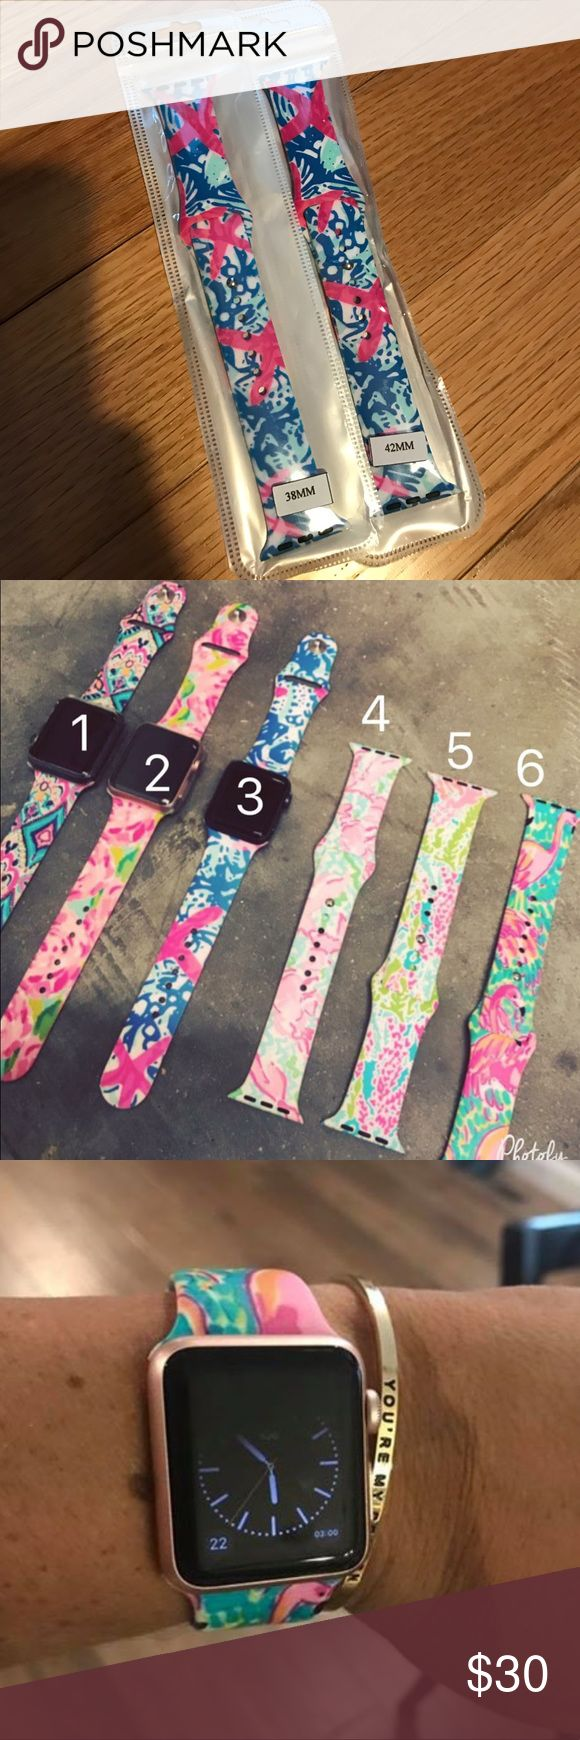 🎀NEW🎀LILLY APPLE WATCH BAND STARFISH PRINT 🎀NEW🎀LILY APPLE WATCH BAND. This listing is for the STARFISH Print. See 1st pic. Lilly Inspired boutique brand made of Silicone ❌no trading or holding🎀MY PRICE IS FIRM🎀NOT ACCEPTING OFFERS Lilly Pulitzer Accessories Watches